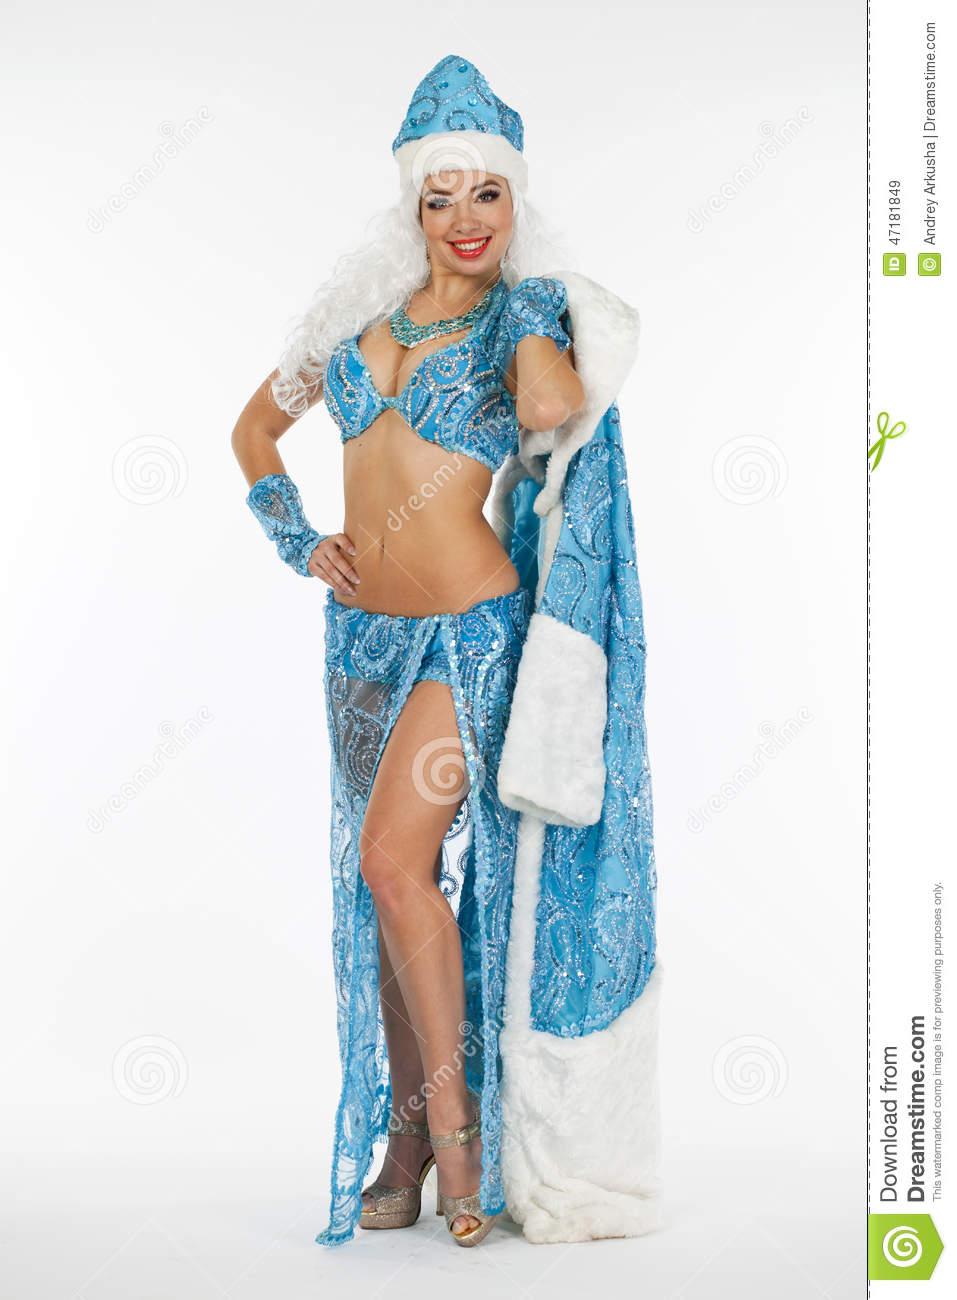 Can speak sexy naked snow girl costume